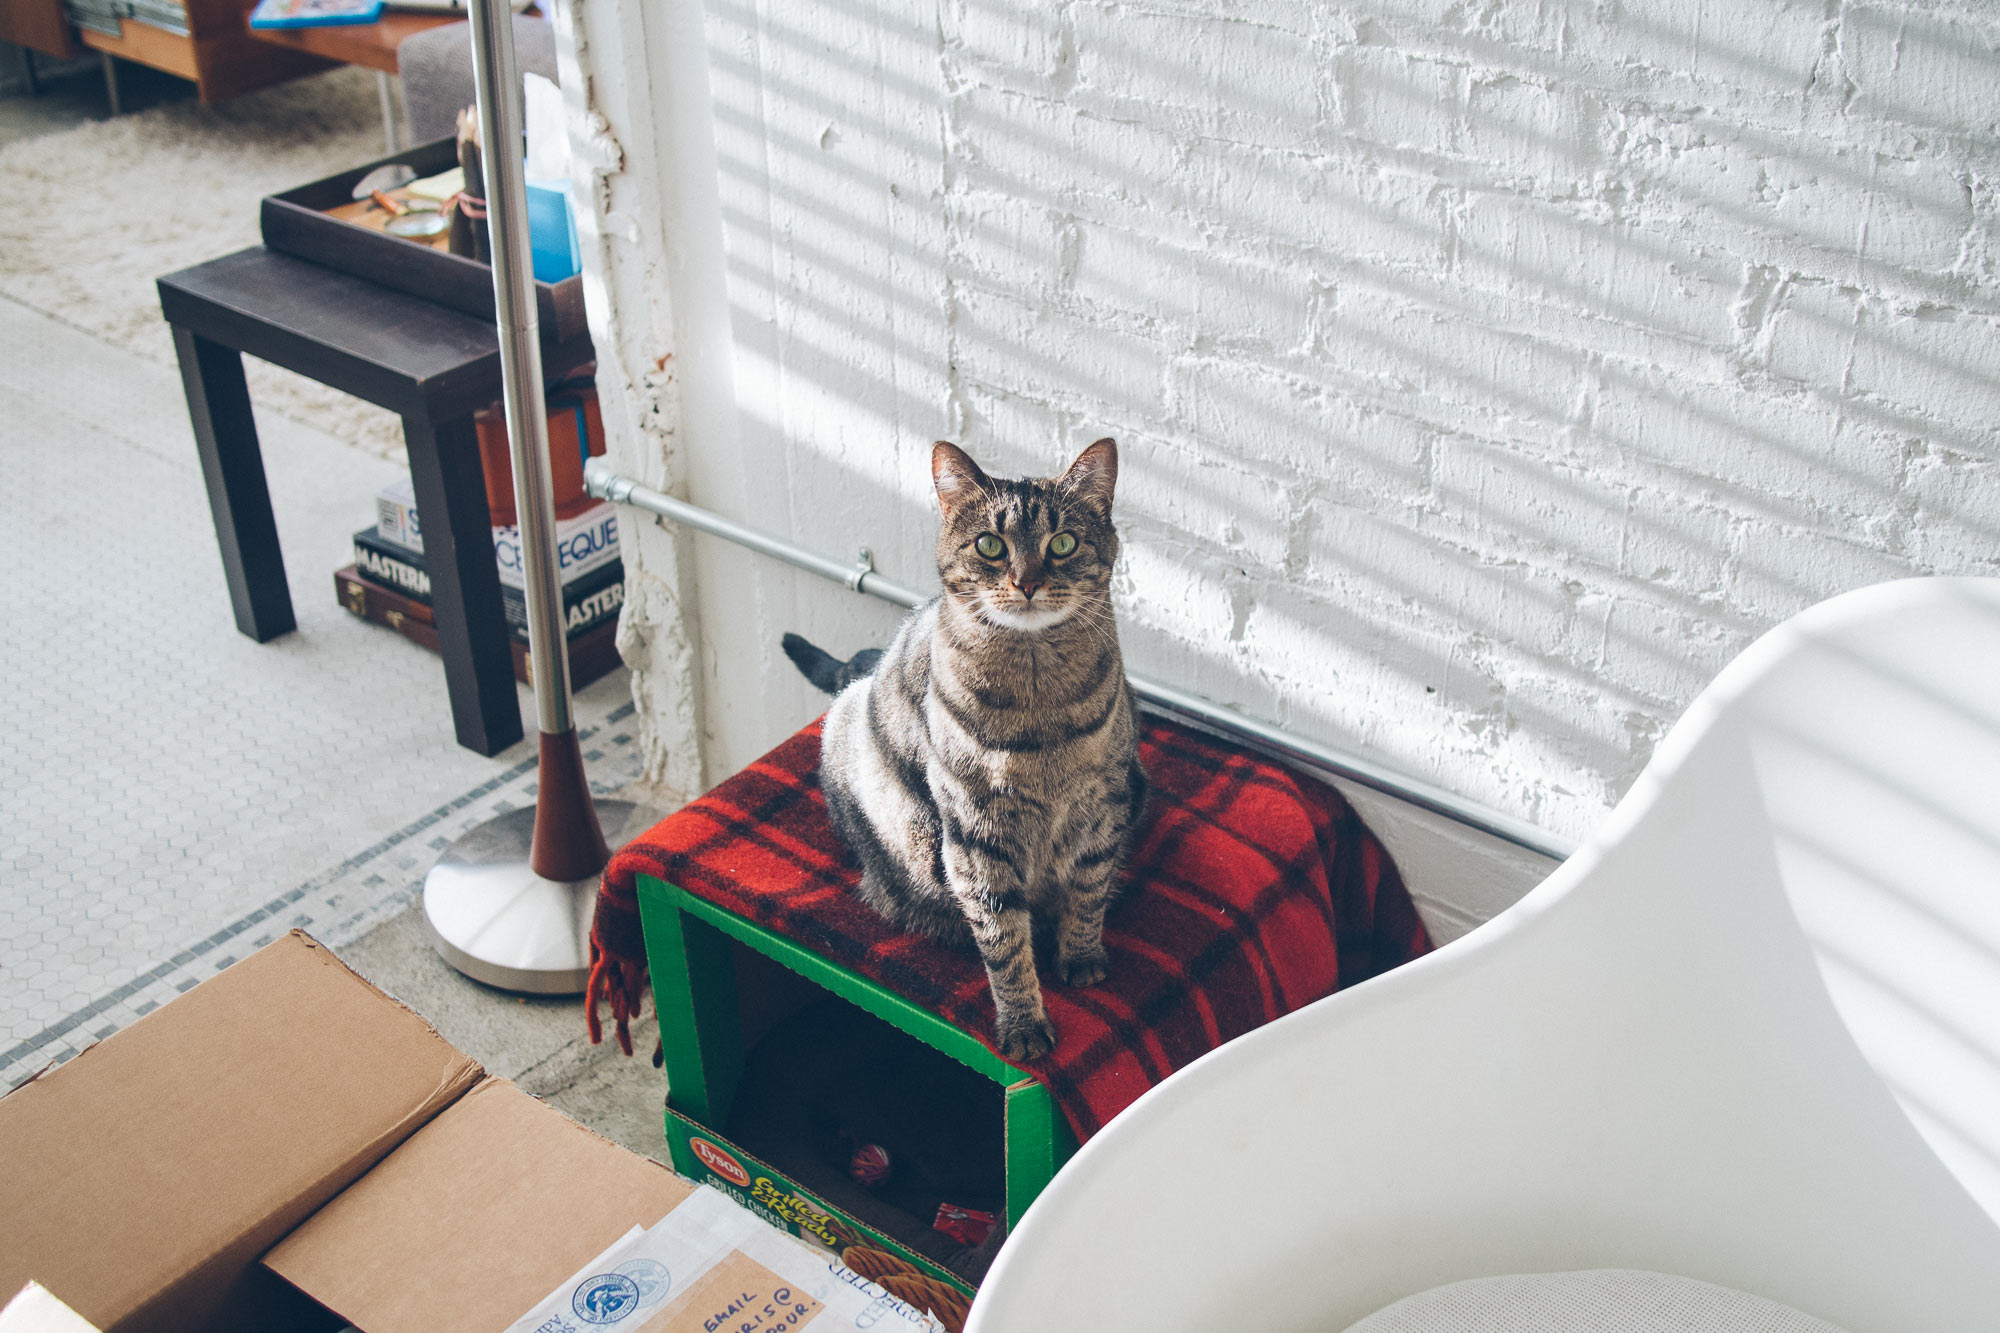 Cat in box with blanket